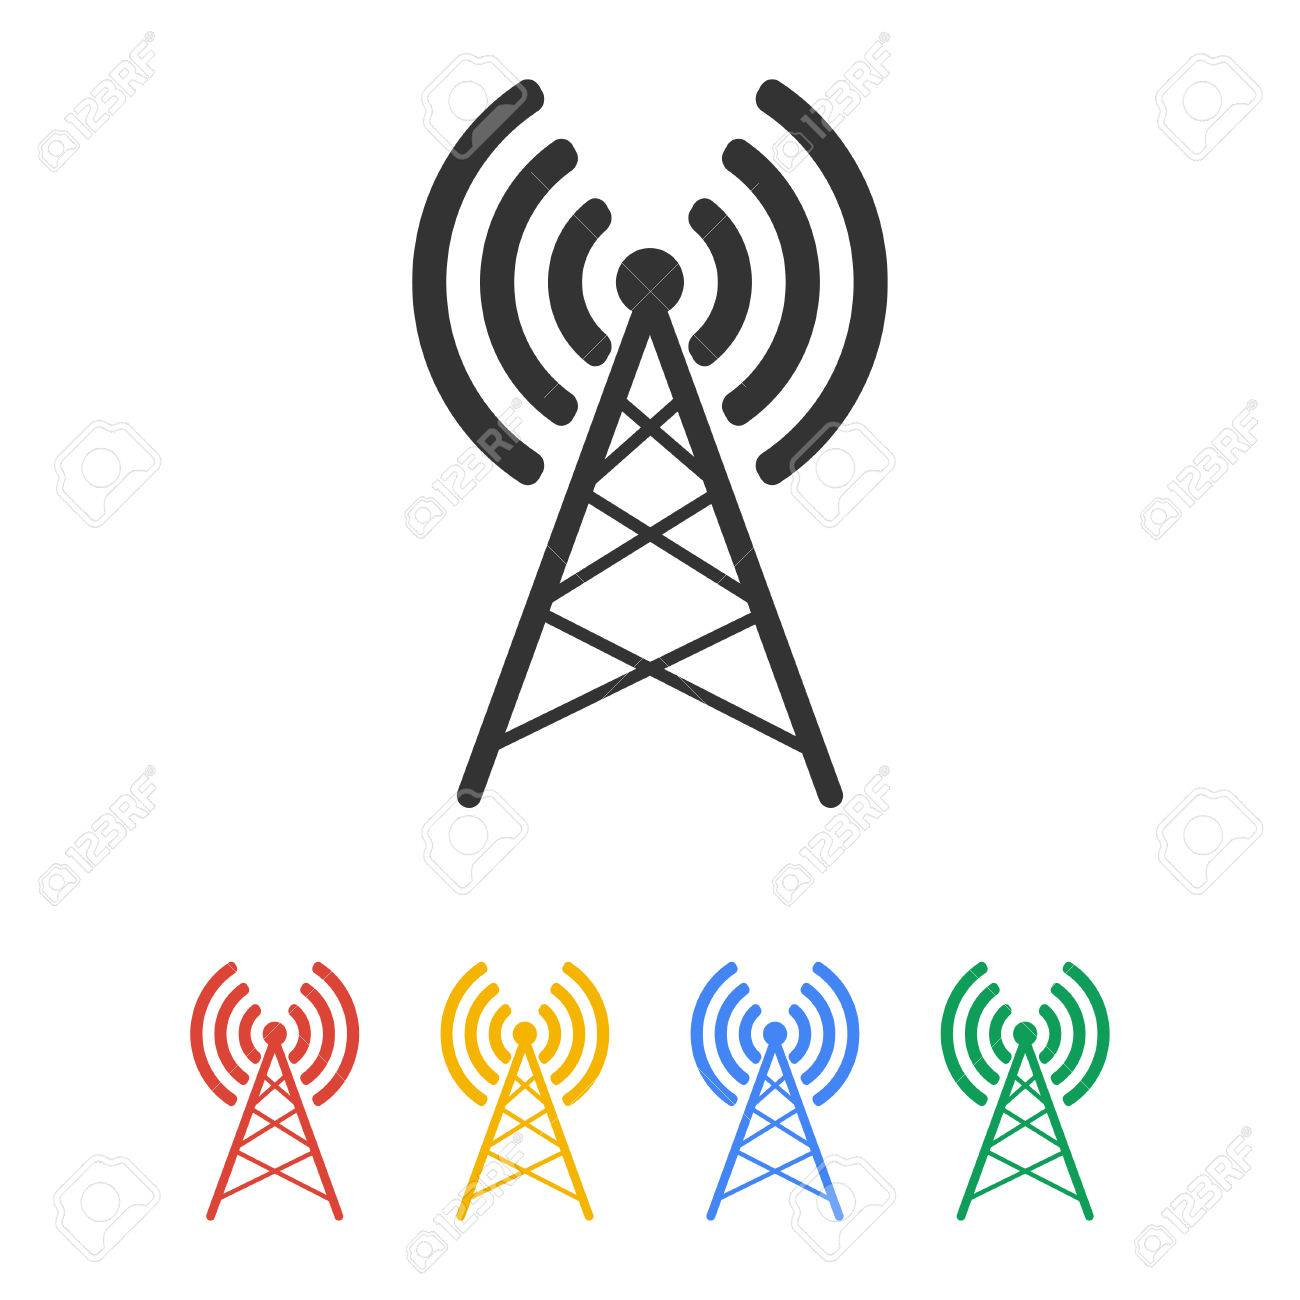 Antenna Icon, Vector Flat Illustration EPS 10 Royalty Free Cliparts ...